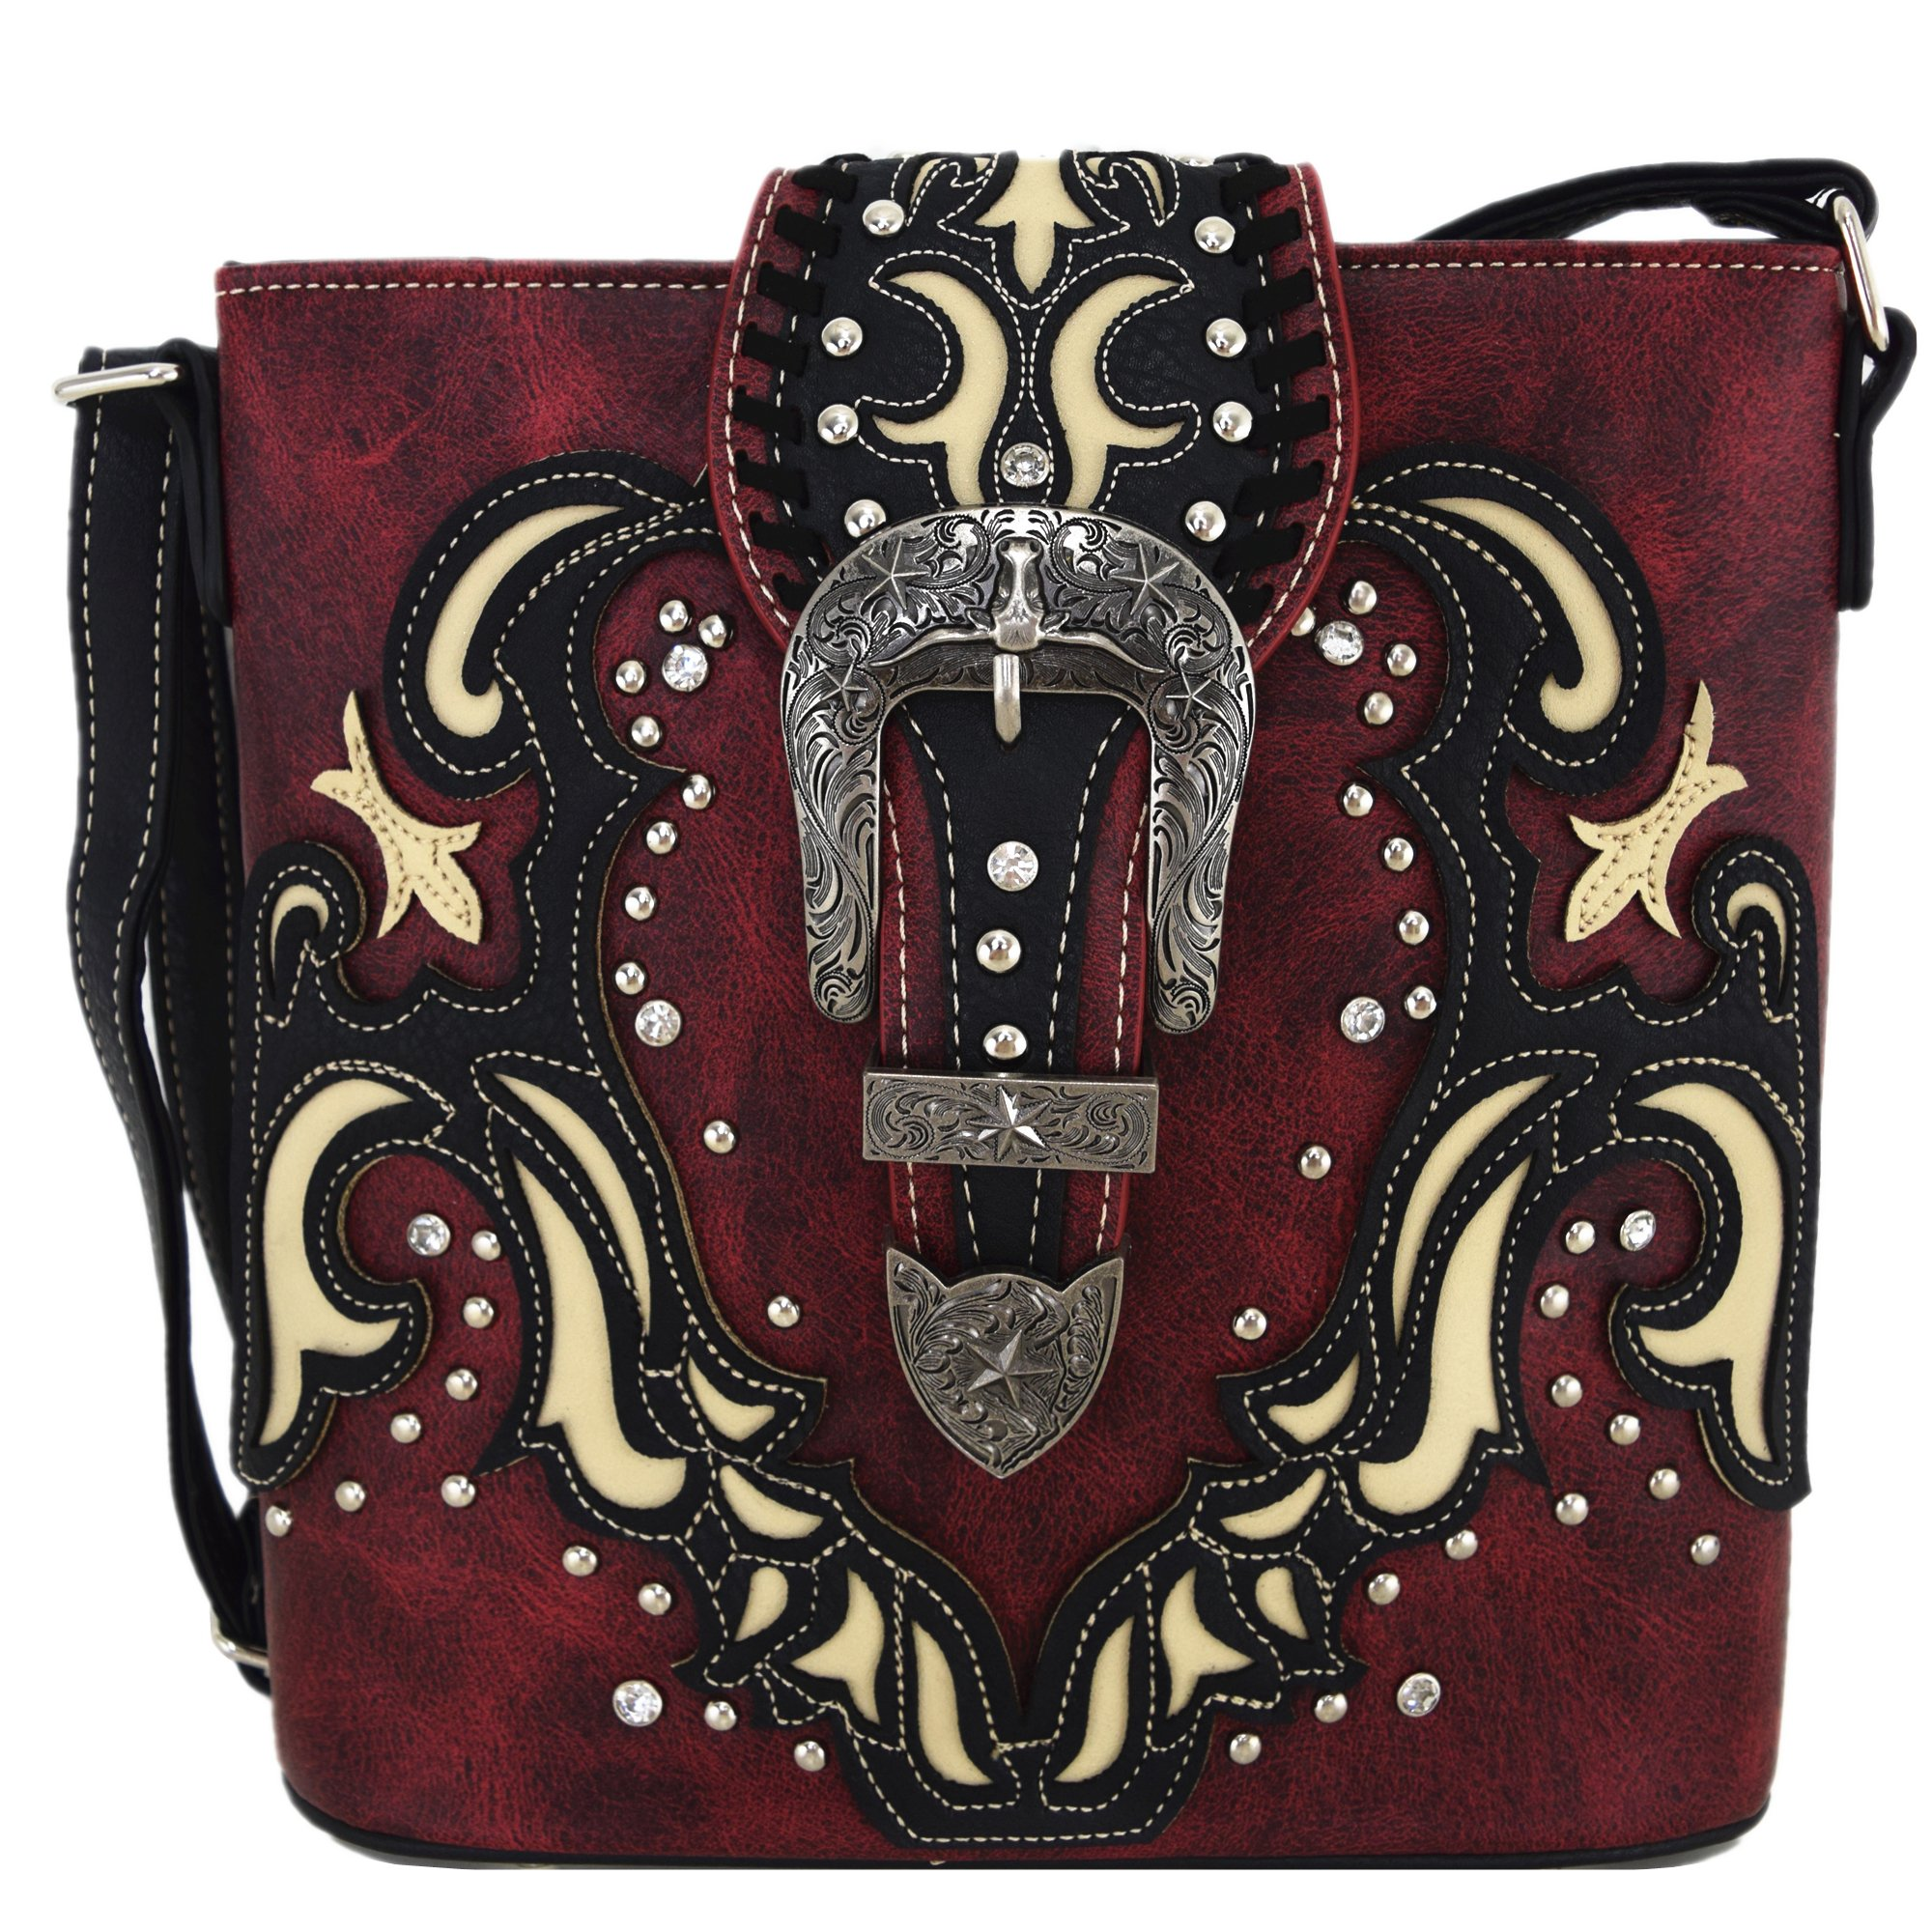 Western Style Buckle Belts Cross Body Handbags Concealed Carry Purse Women Country Single Shoulder Bags (Red)